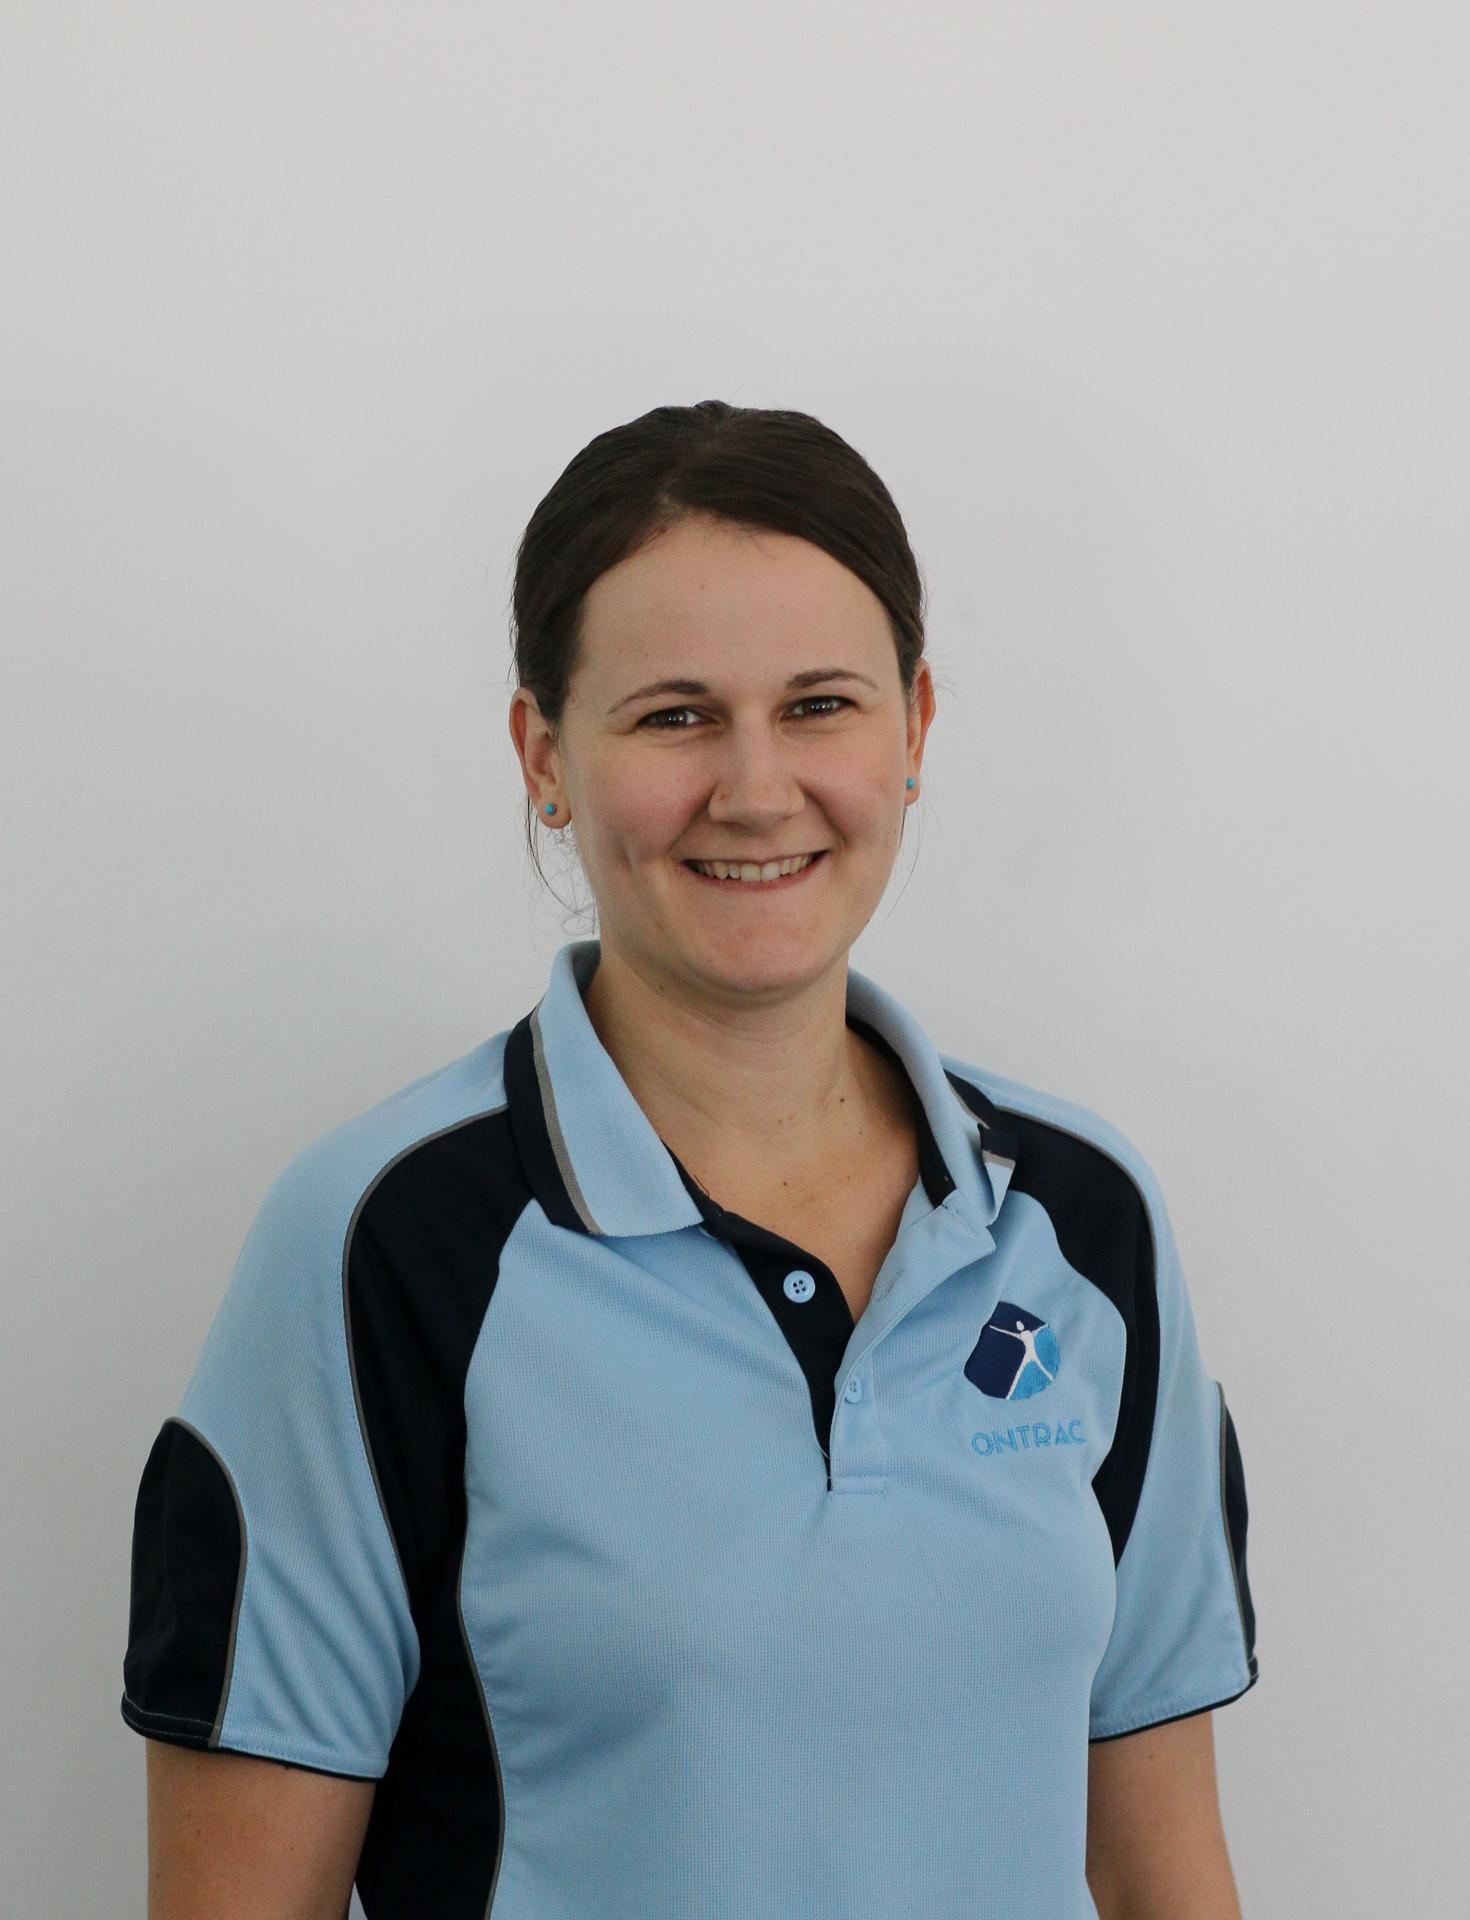 Sheree Connolly - Accredited Exercise Physiologist - Bowral Clinic